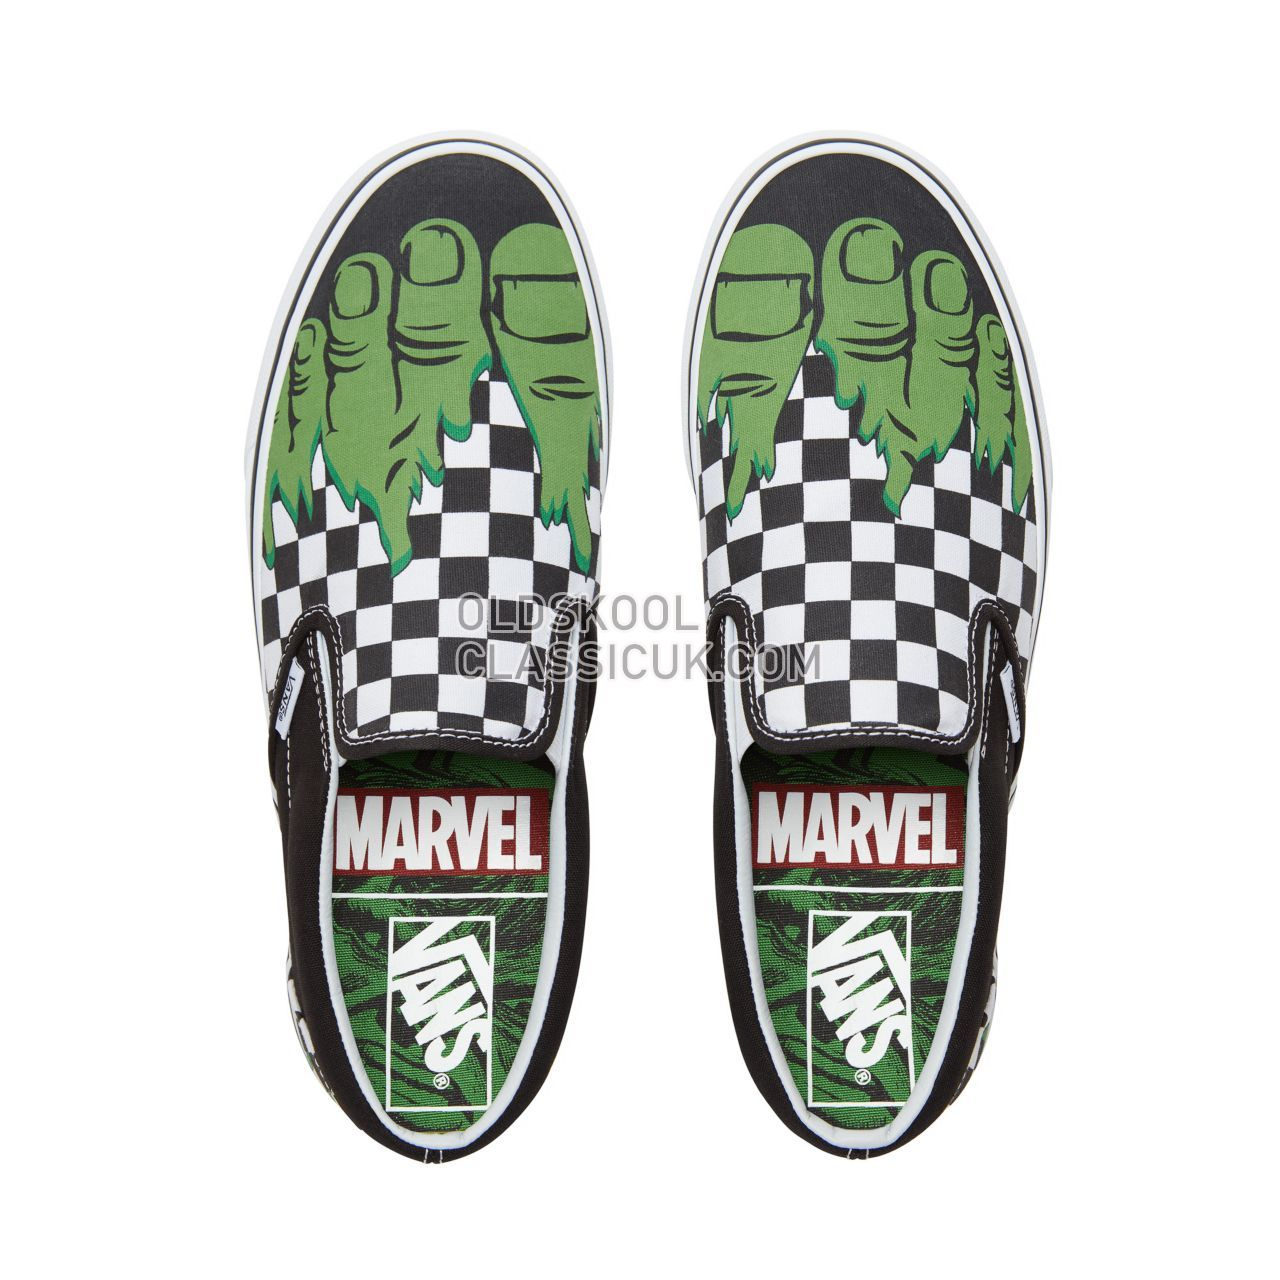 Vans X Marvel Classic Slip-On Sneakers Mens (Marvel) Hulk/Checkerboard VA38F7U44 Shoes